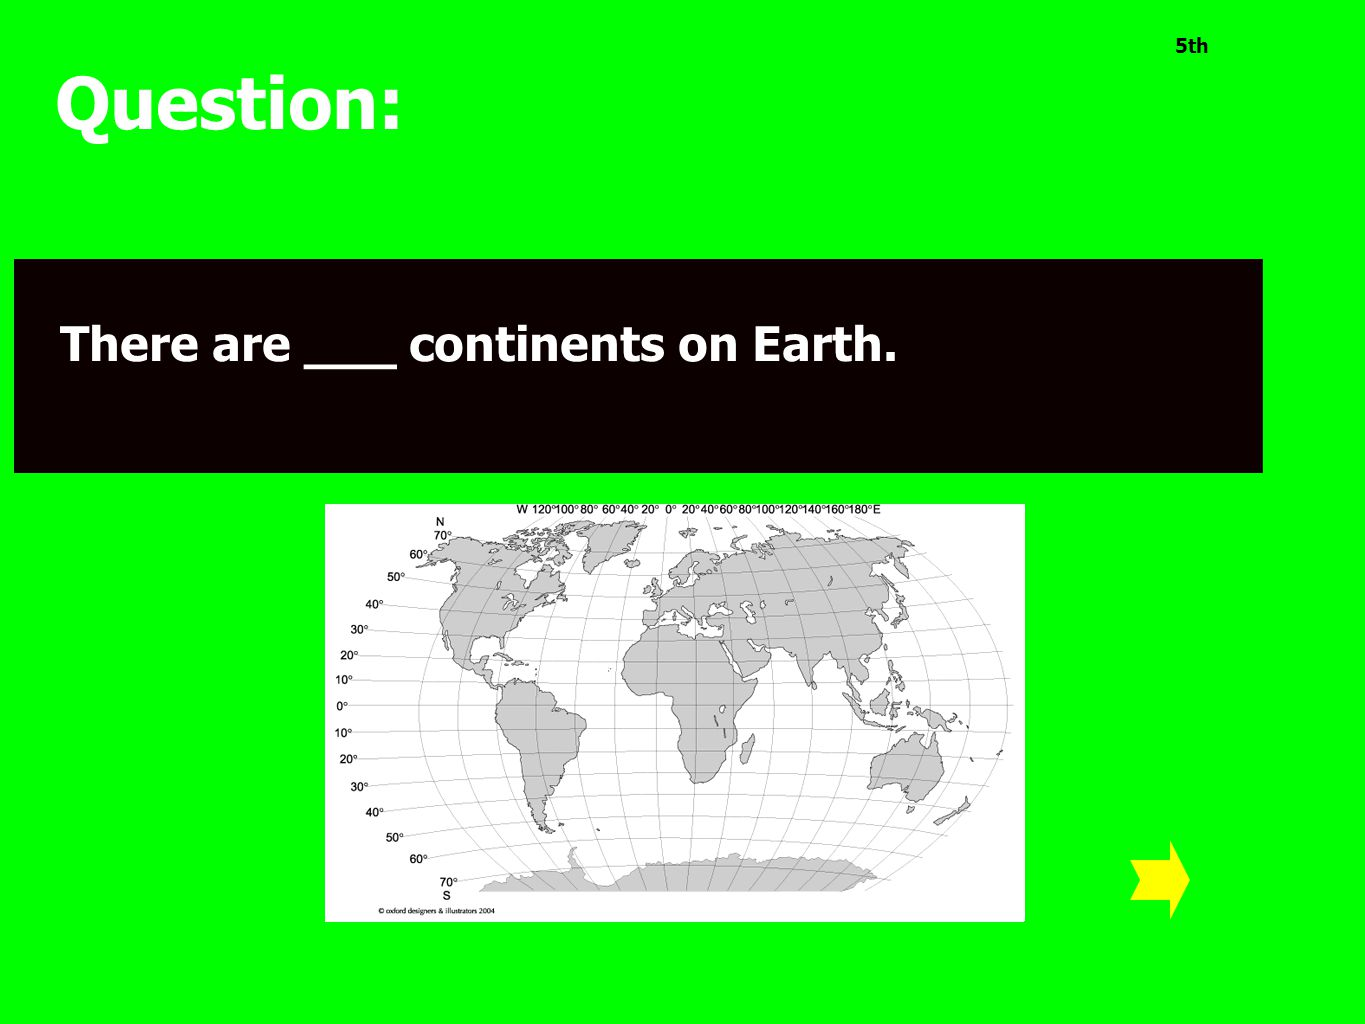 5th Question: There are ___ continents on Earth.